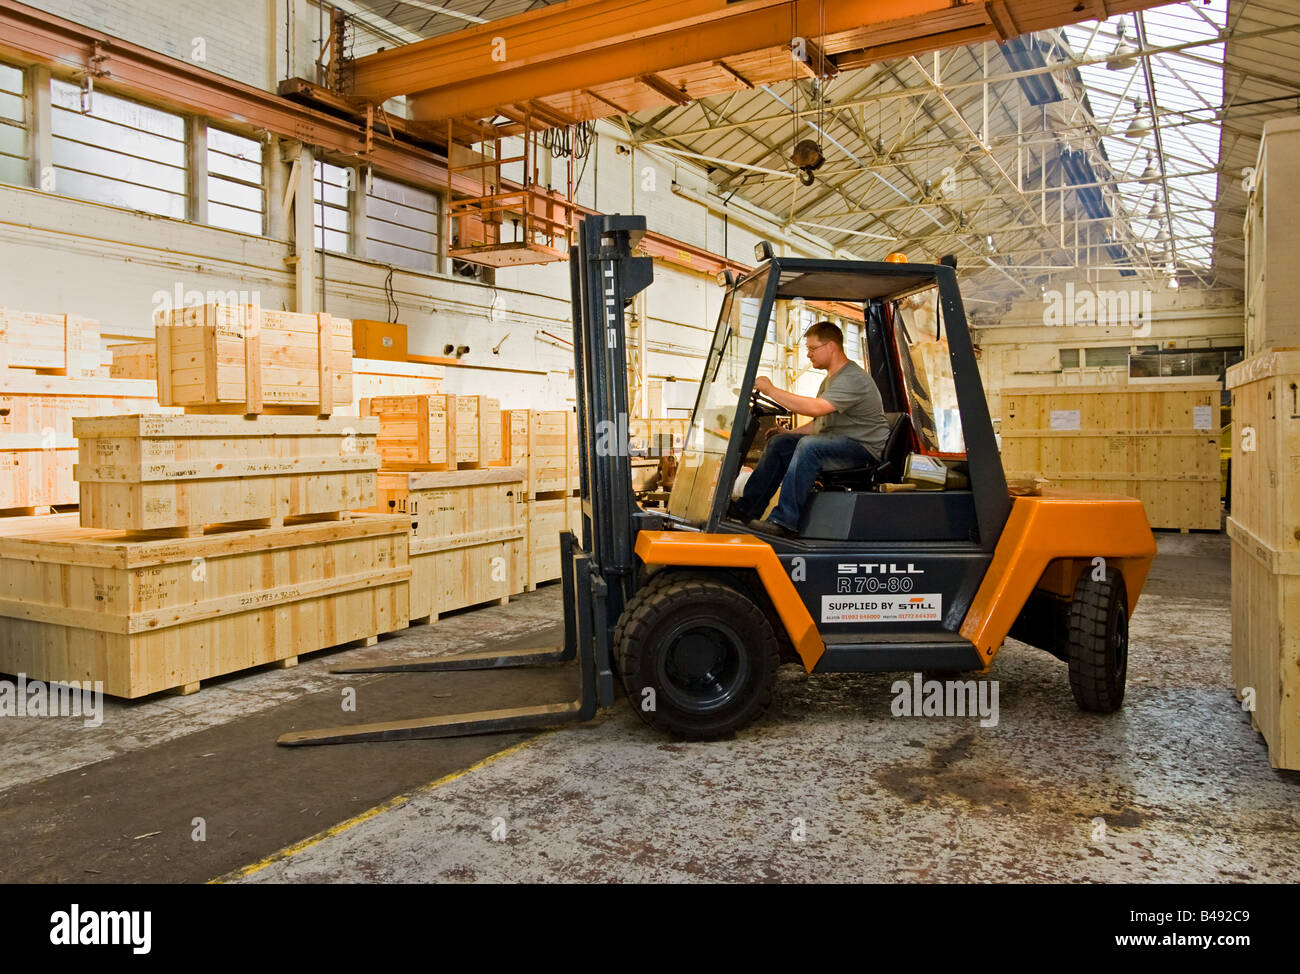 Warehouse - Man driving forklift truck, UK - Stock Image